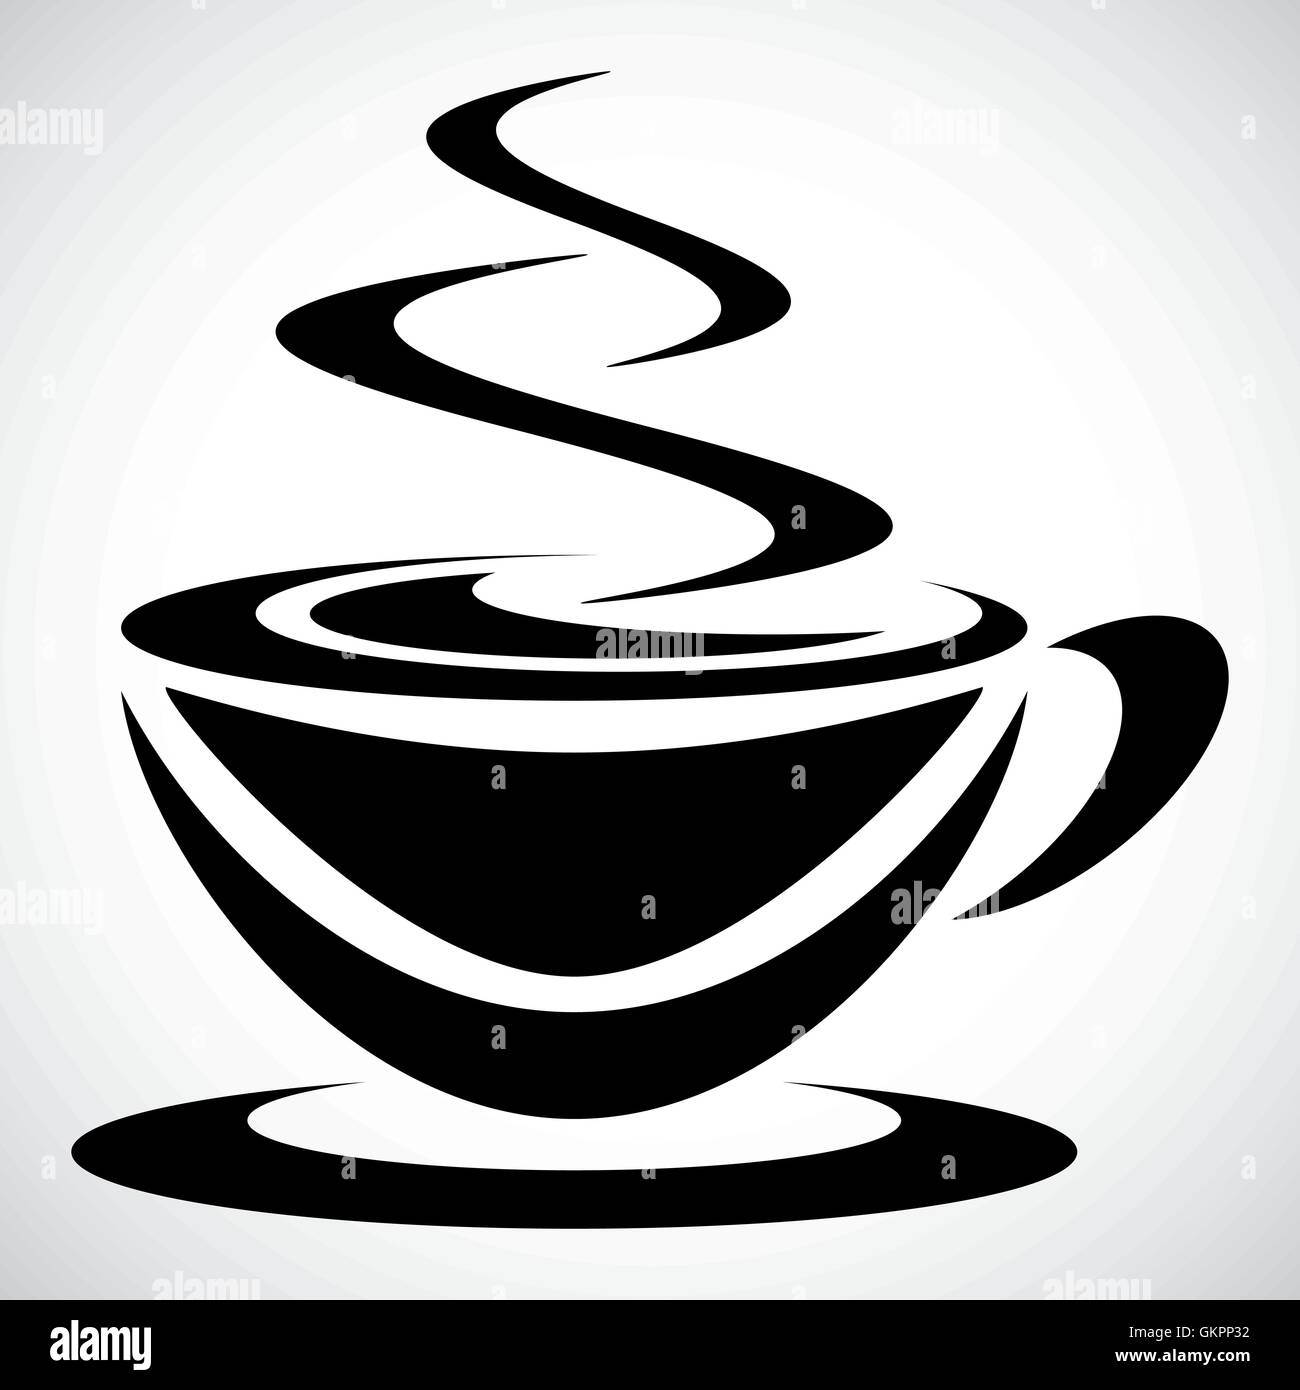 Icon Pictogram black coffee for creative use in graphic design - Stock Image